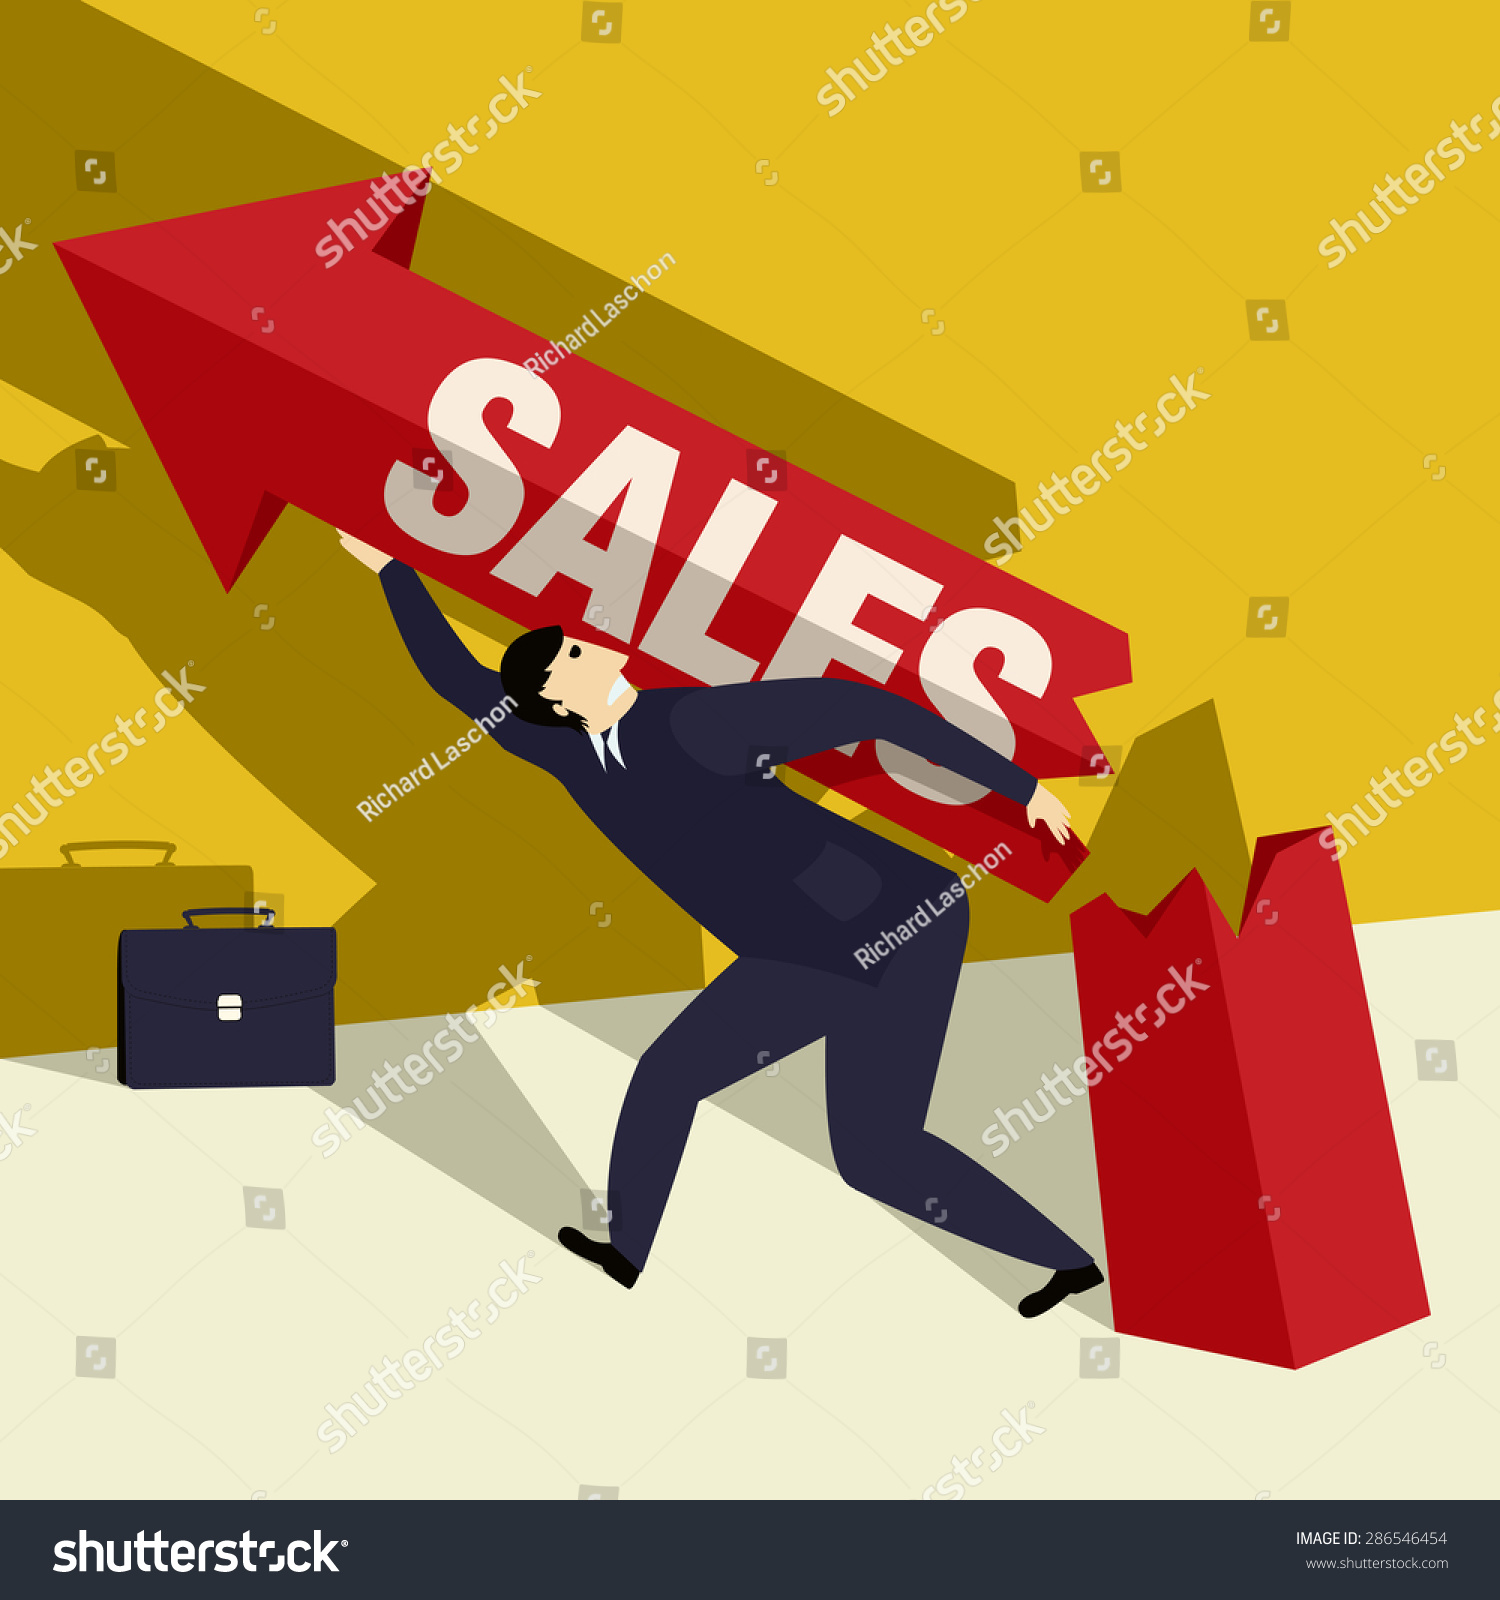 stock-vector-illustration-of-a-business-